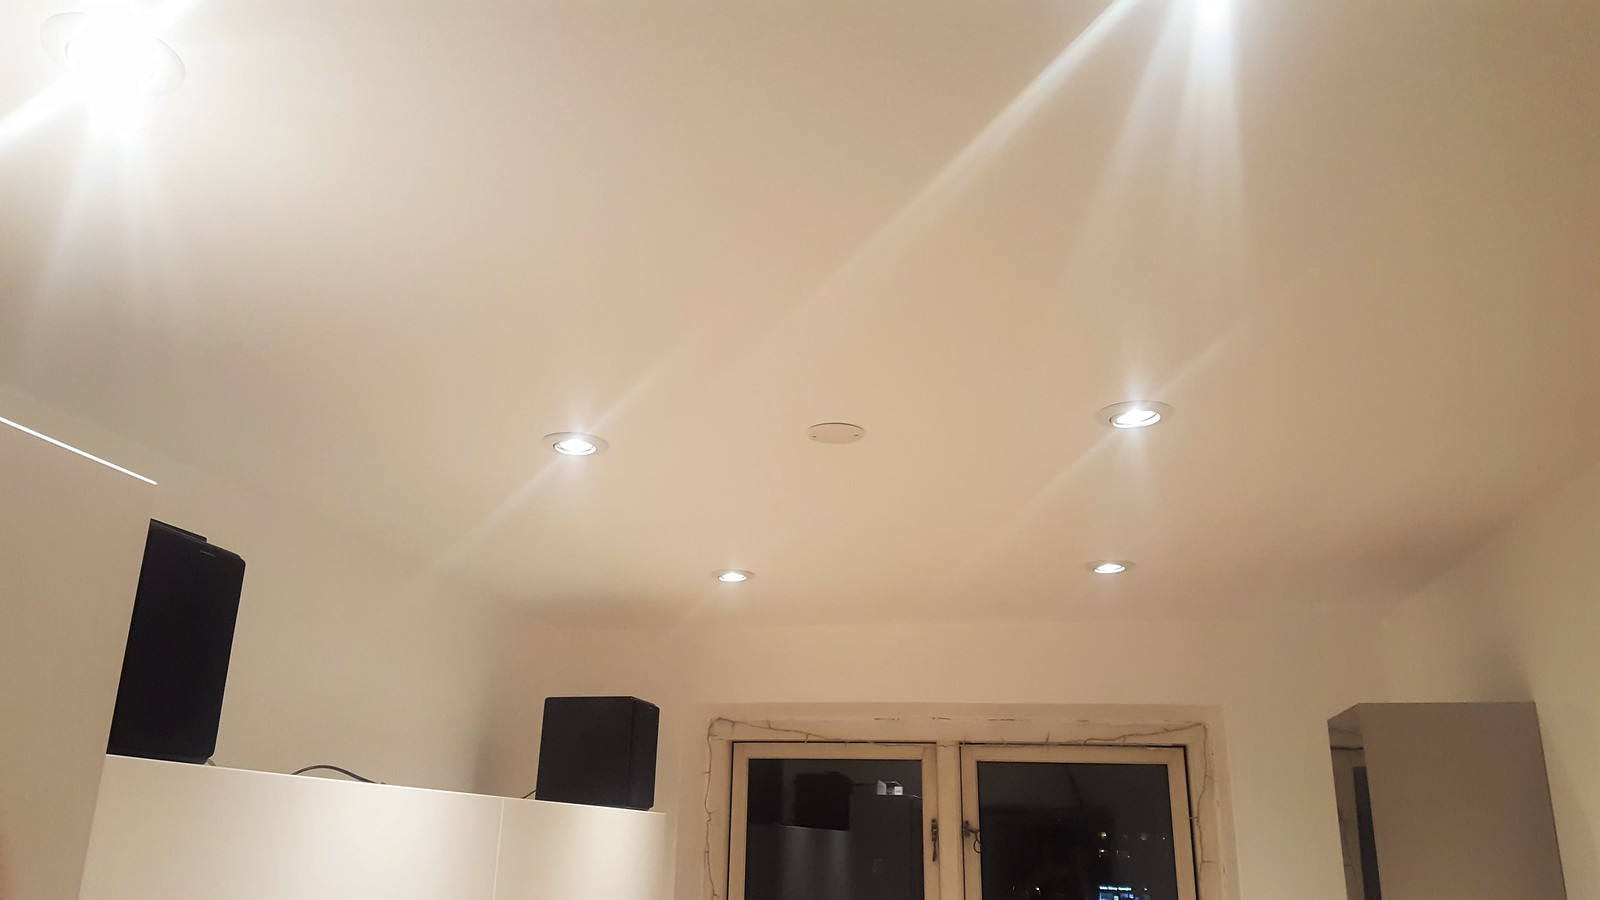 Do Led Ceiling Lights Need Transformers : Guide lower ceiling and install led downlights nordic